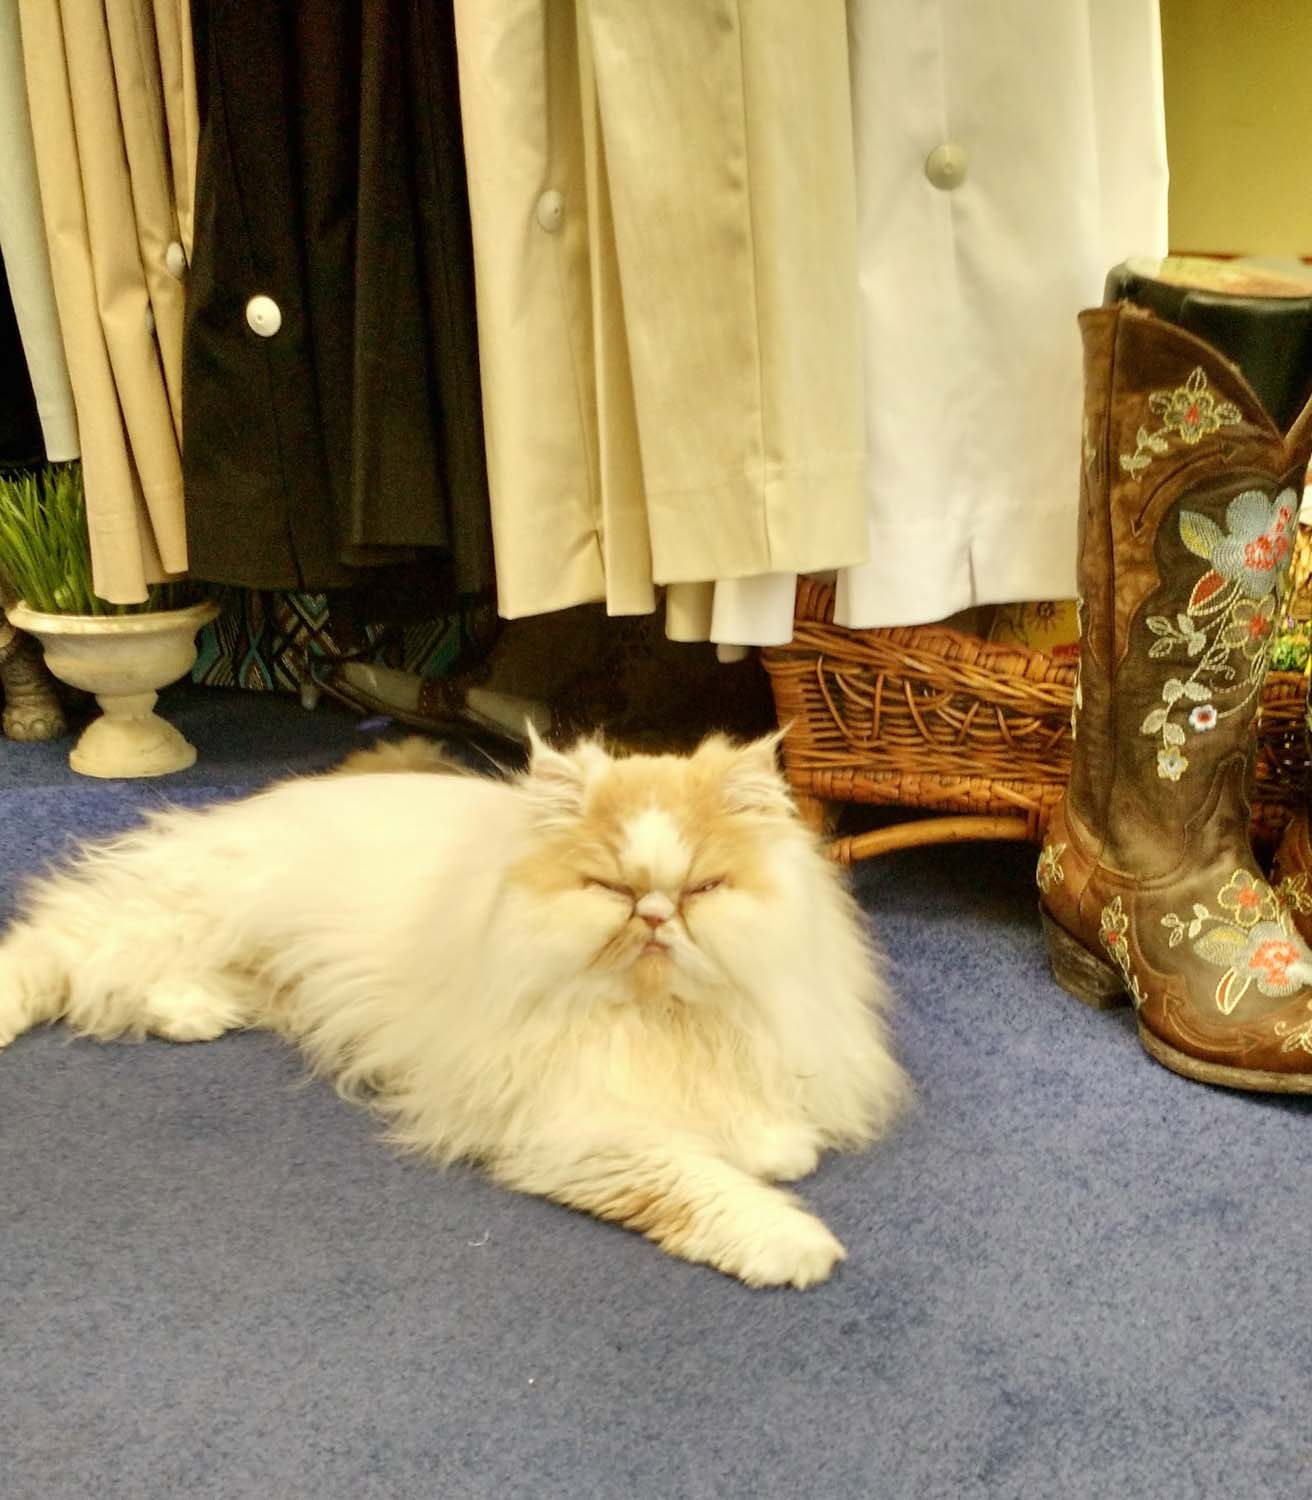 Met this scary beast in a shop and couldn't stop laughing